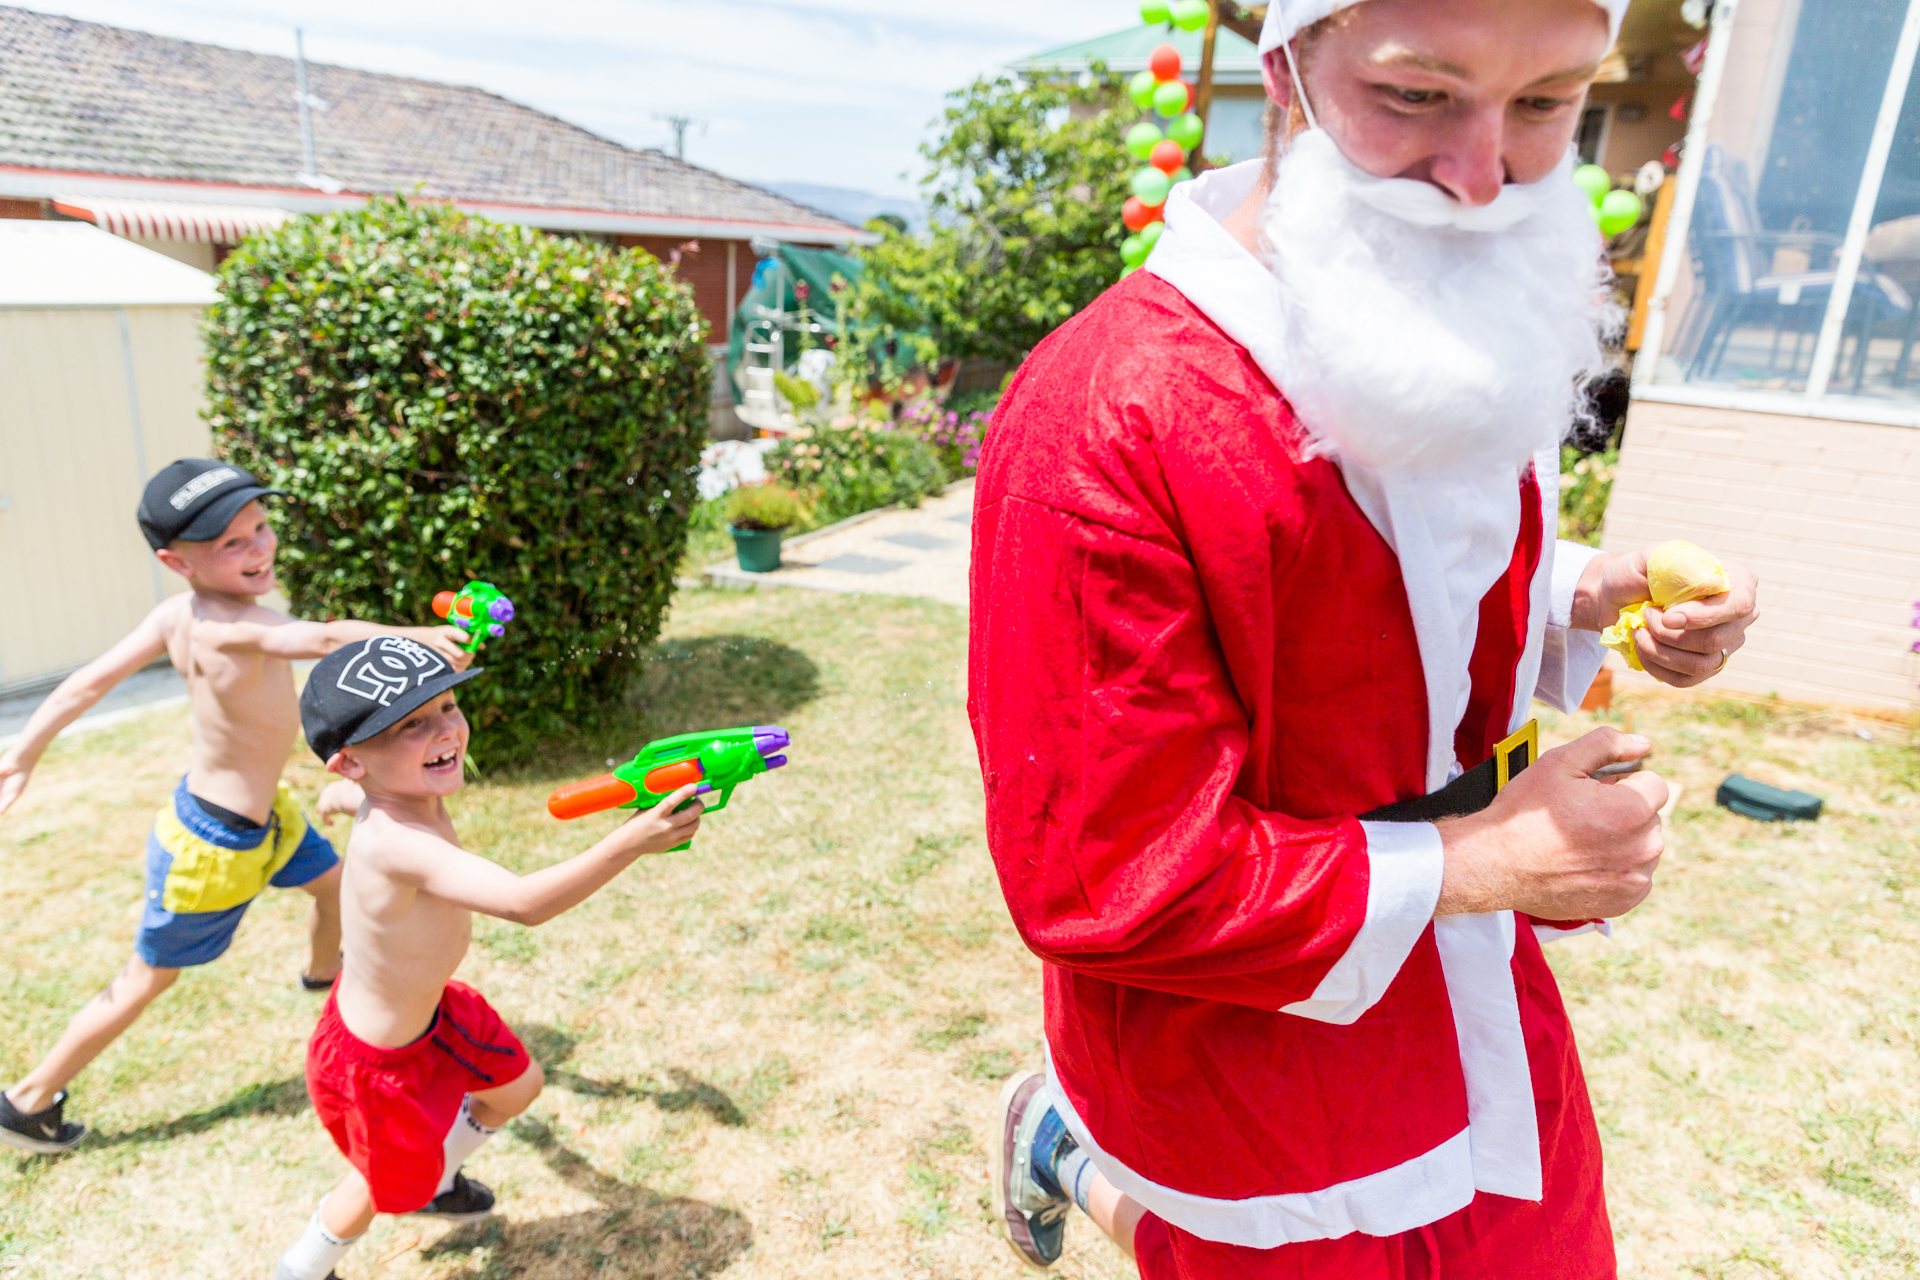 After lunch my brother put on a red suit to distribute gifts we bought for the kids 'from Santa'. The kids could see Don's ginger whiskers under the fake beard, and thought it would be more fun to shoot him with water pistols rather than open presents. Hilarity ensued.